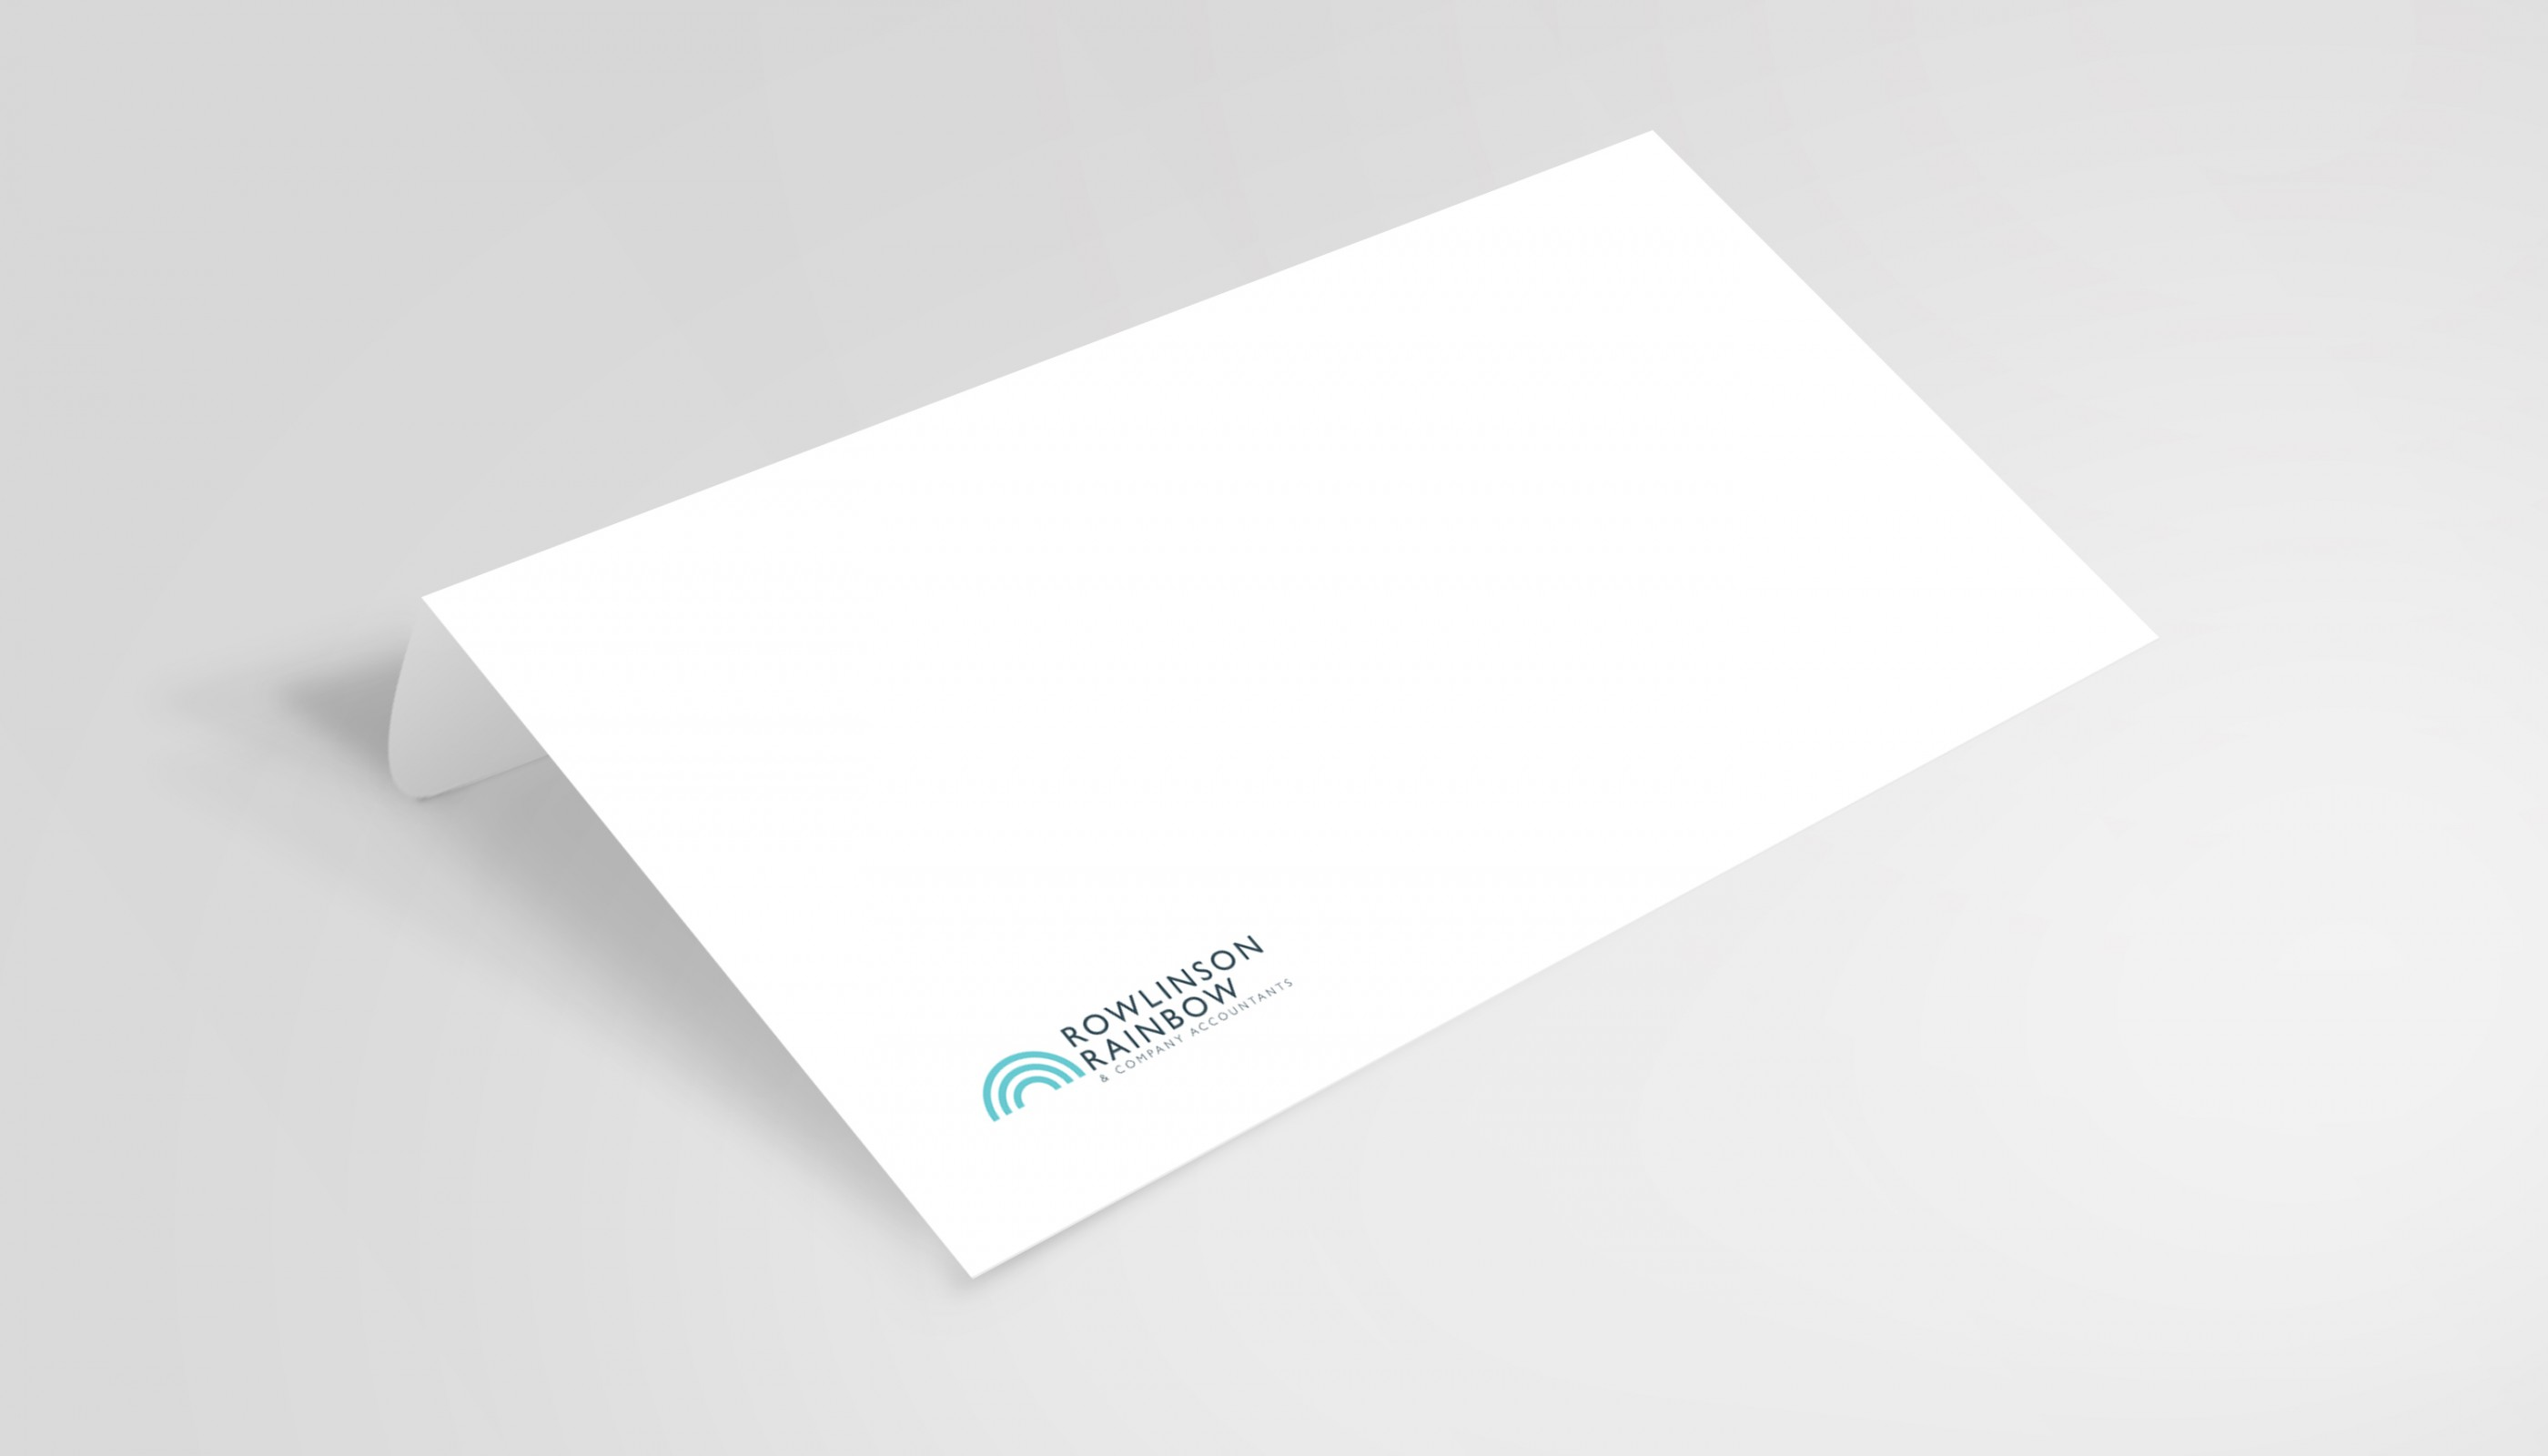 Envelopes for Accountants, printed and delivered by Hypa Concept